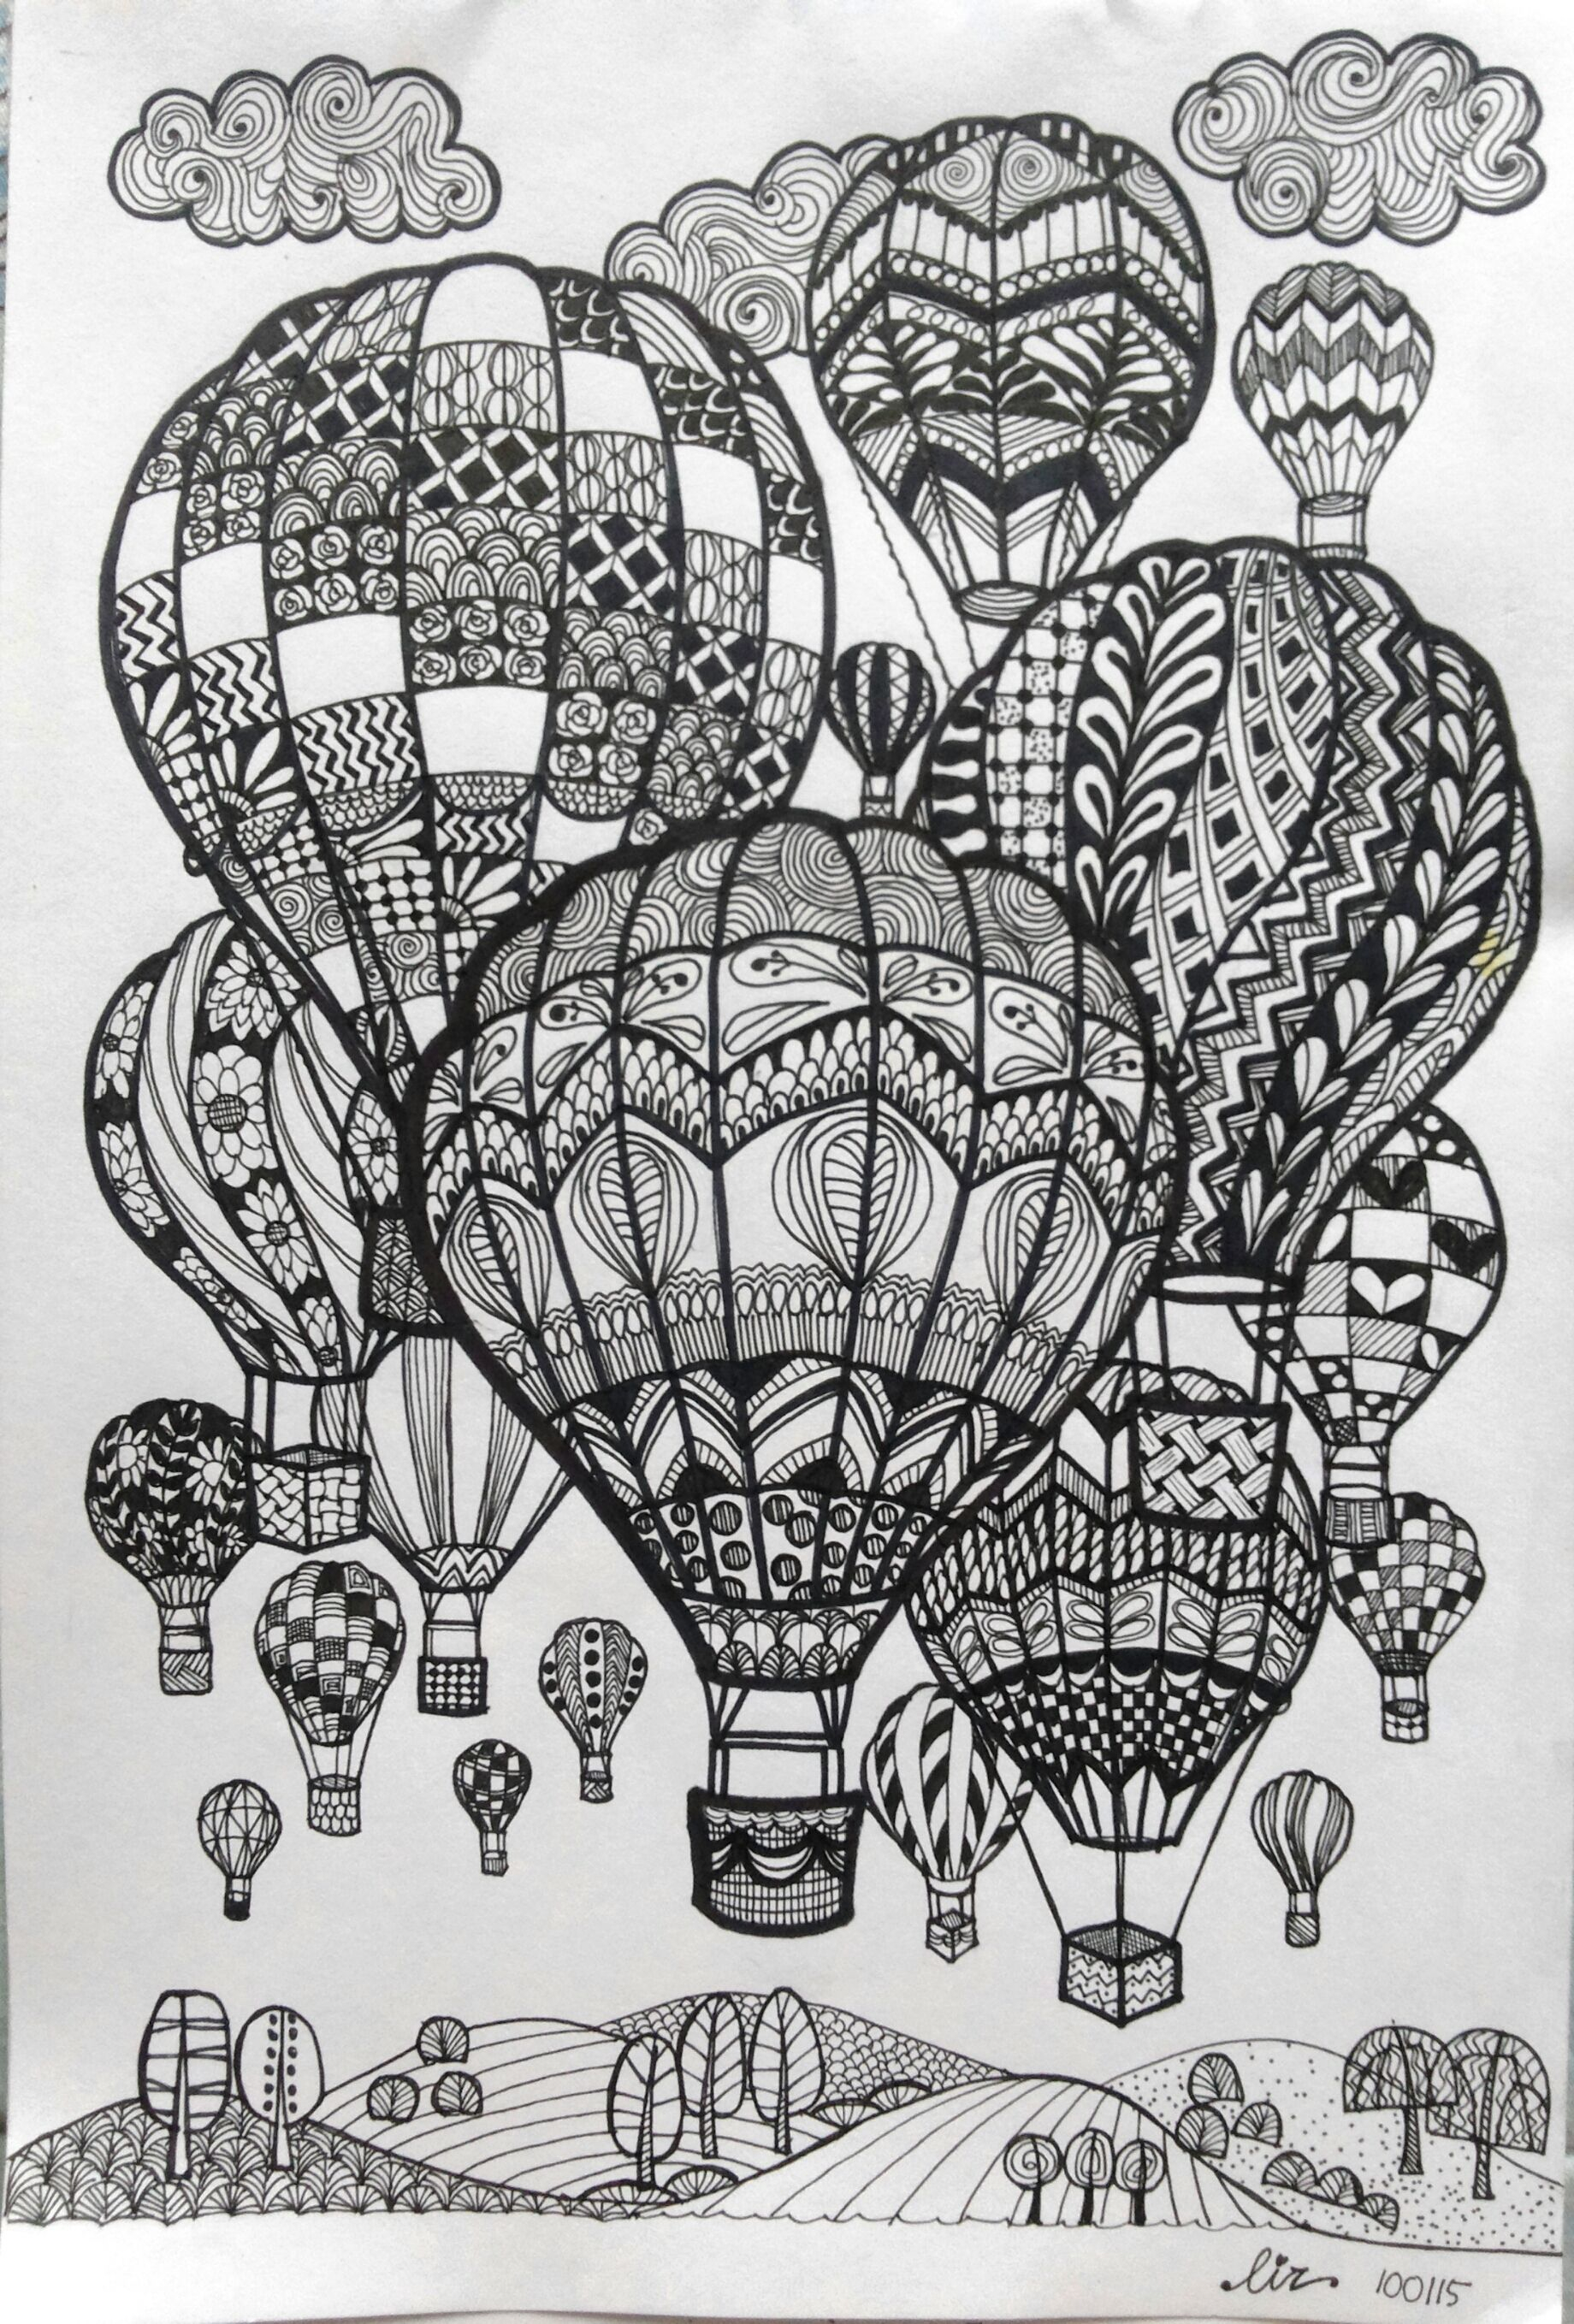 hot air balloon coloring pages Download-Hot Air Balloons Doodle art 9-o